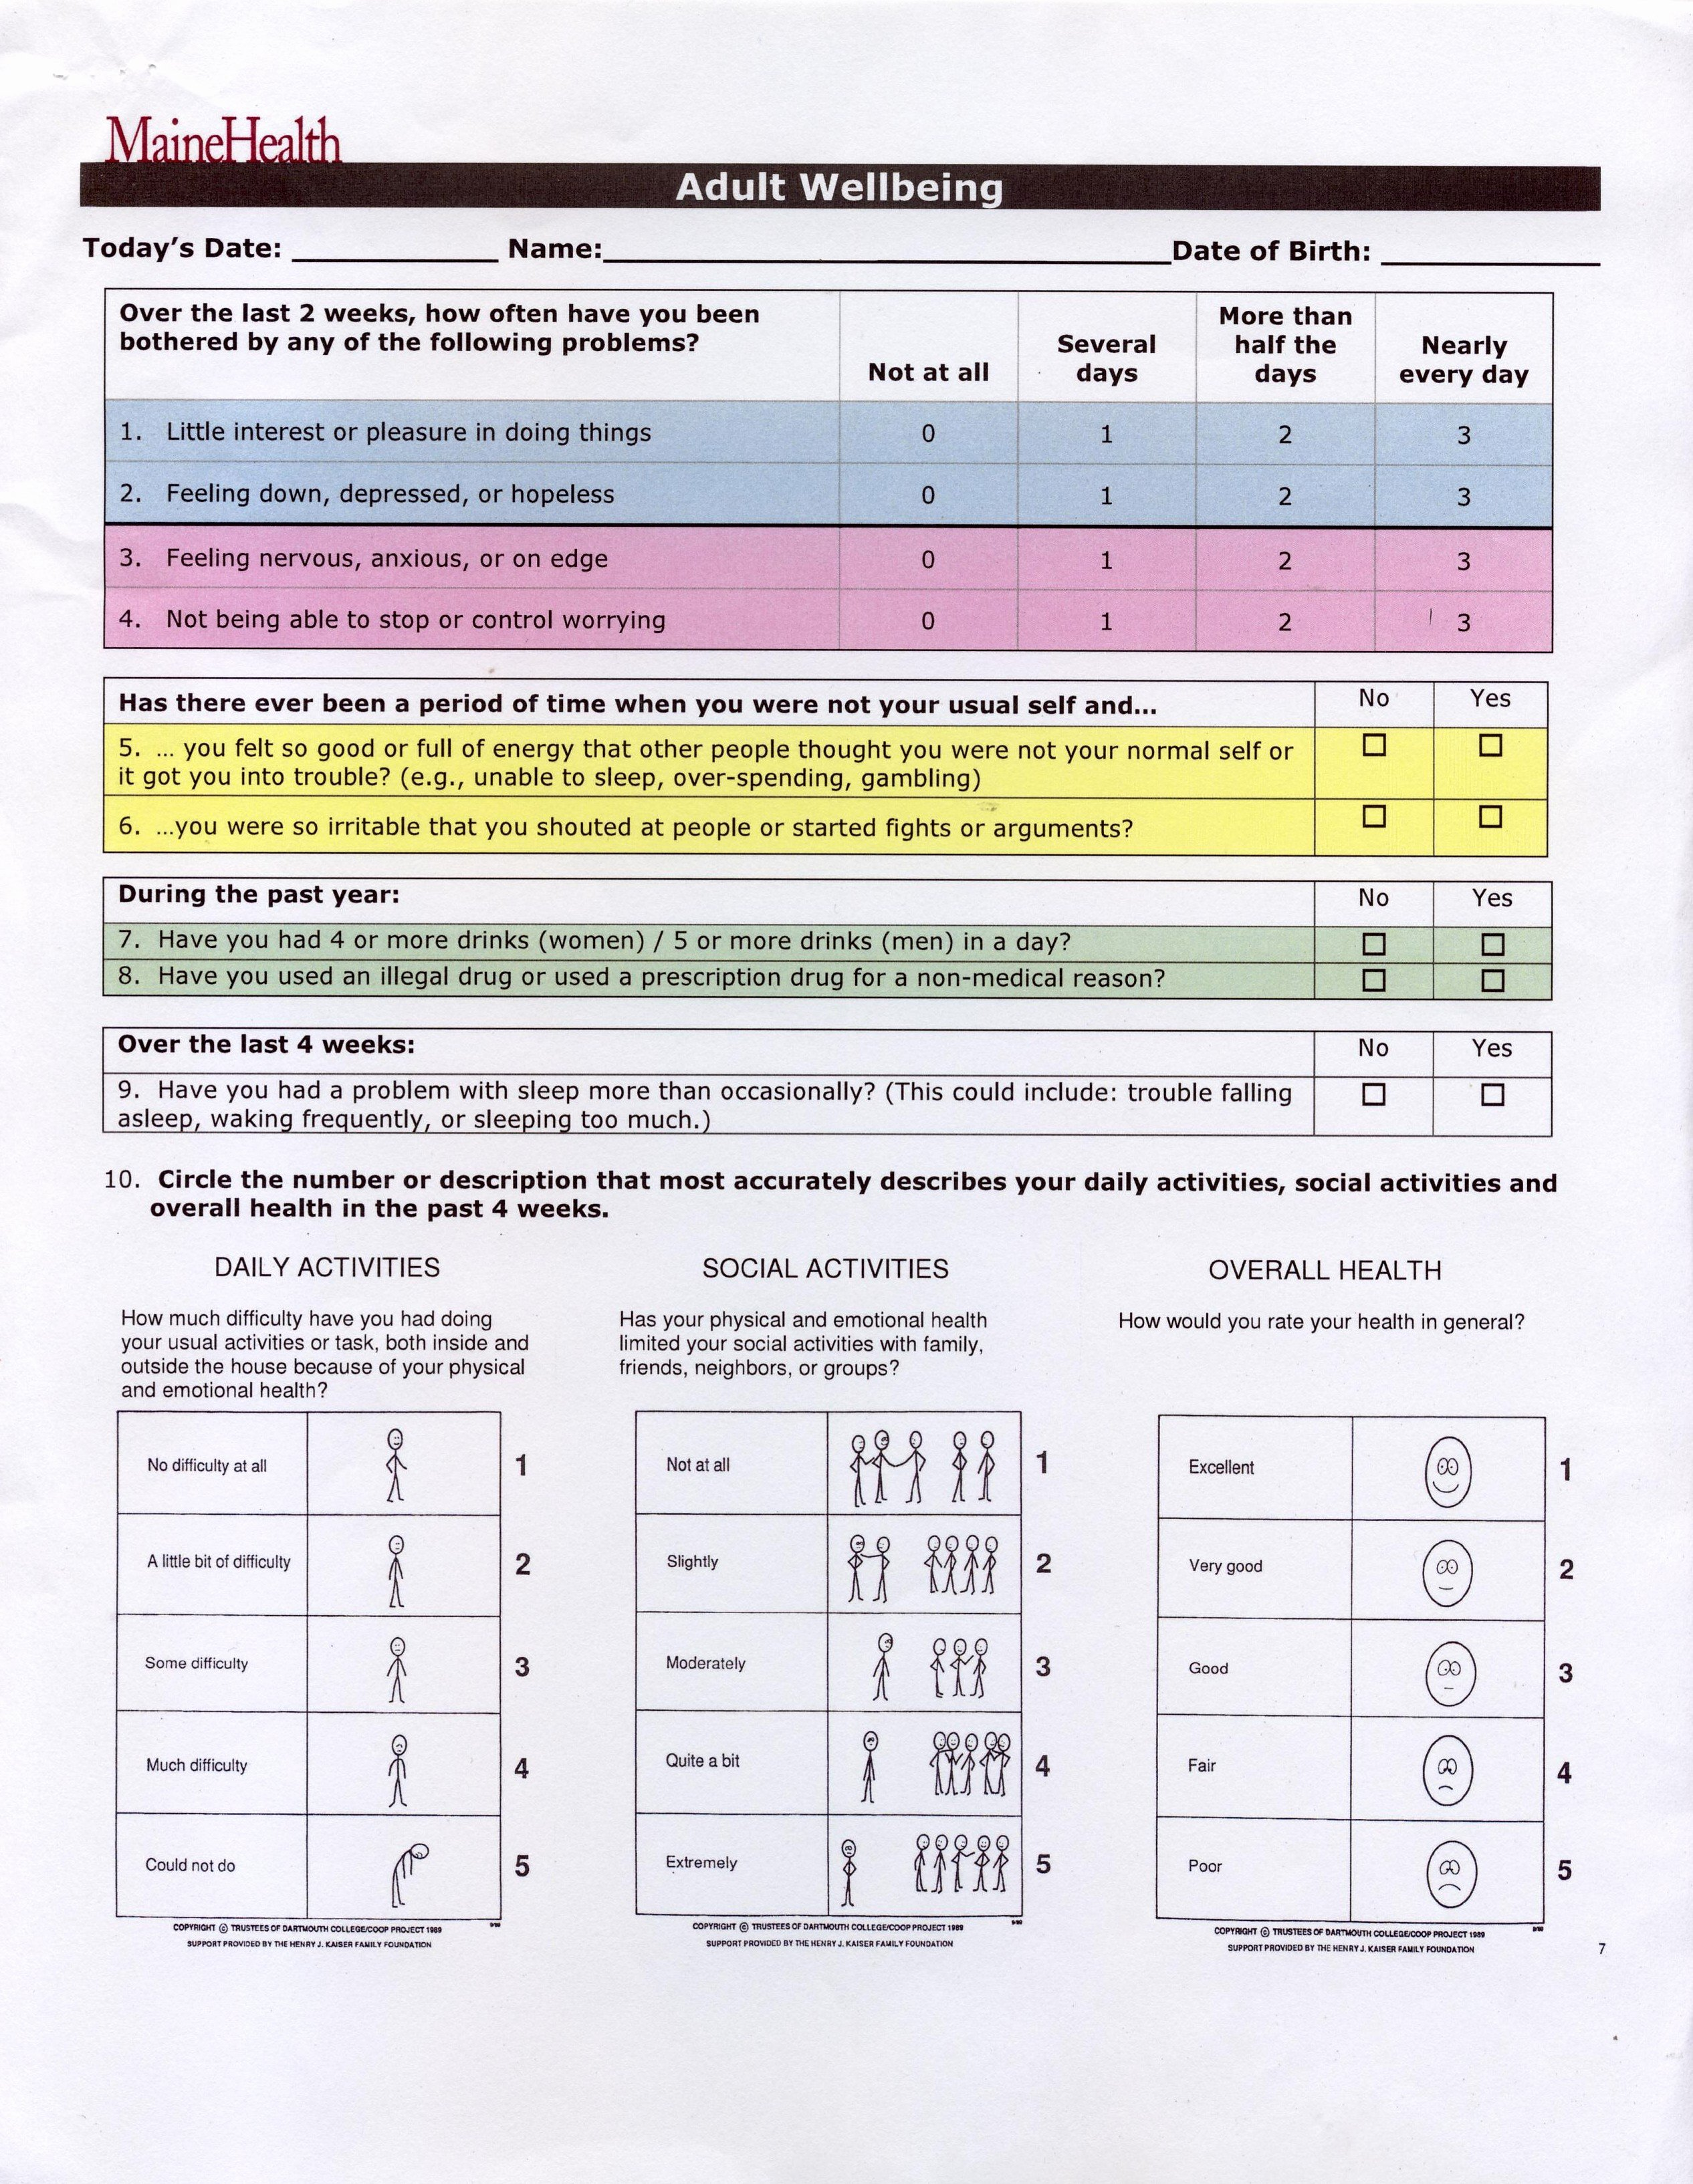 Mental Health Intake form Template Luxury Health assessment forms